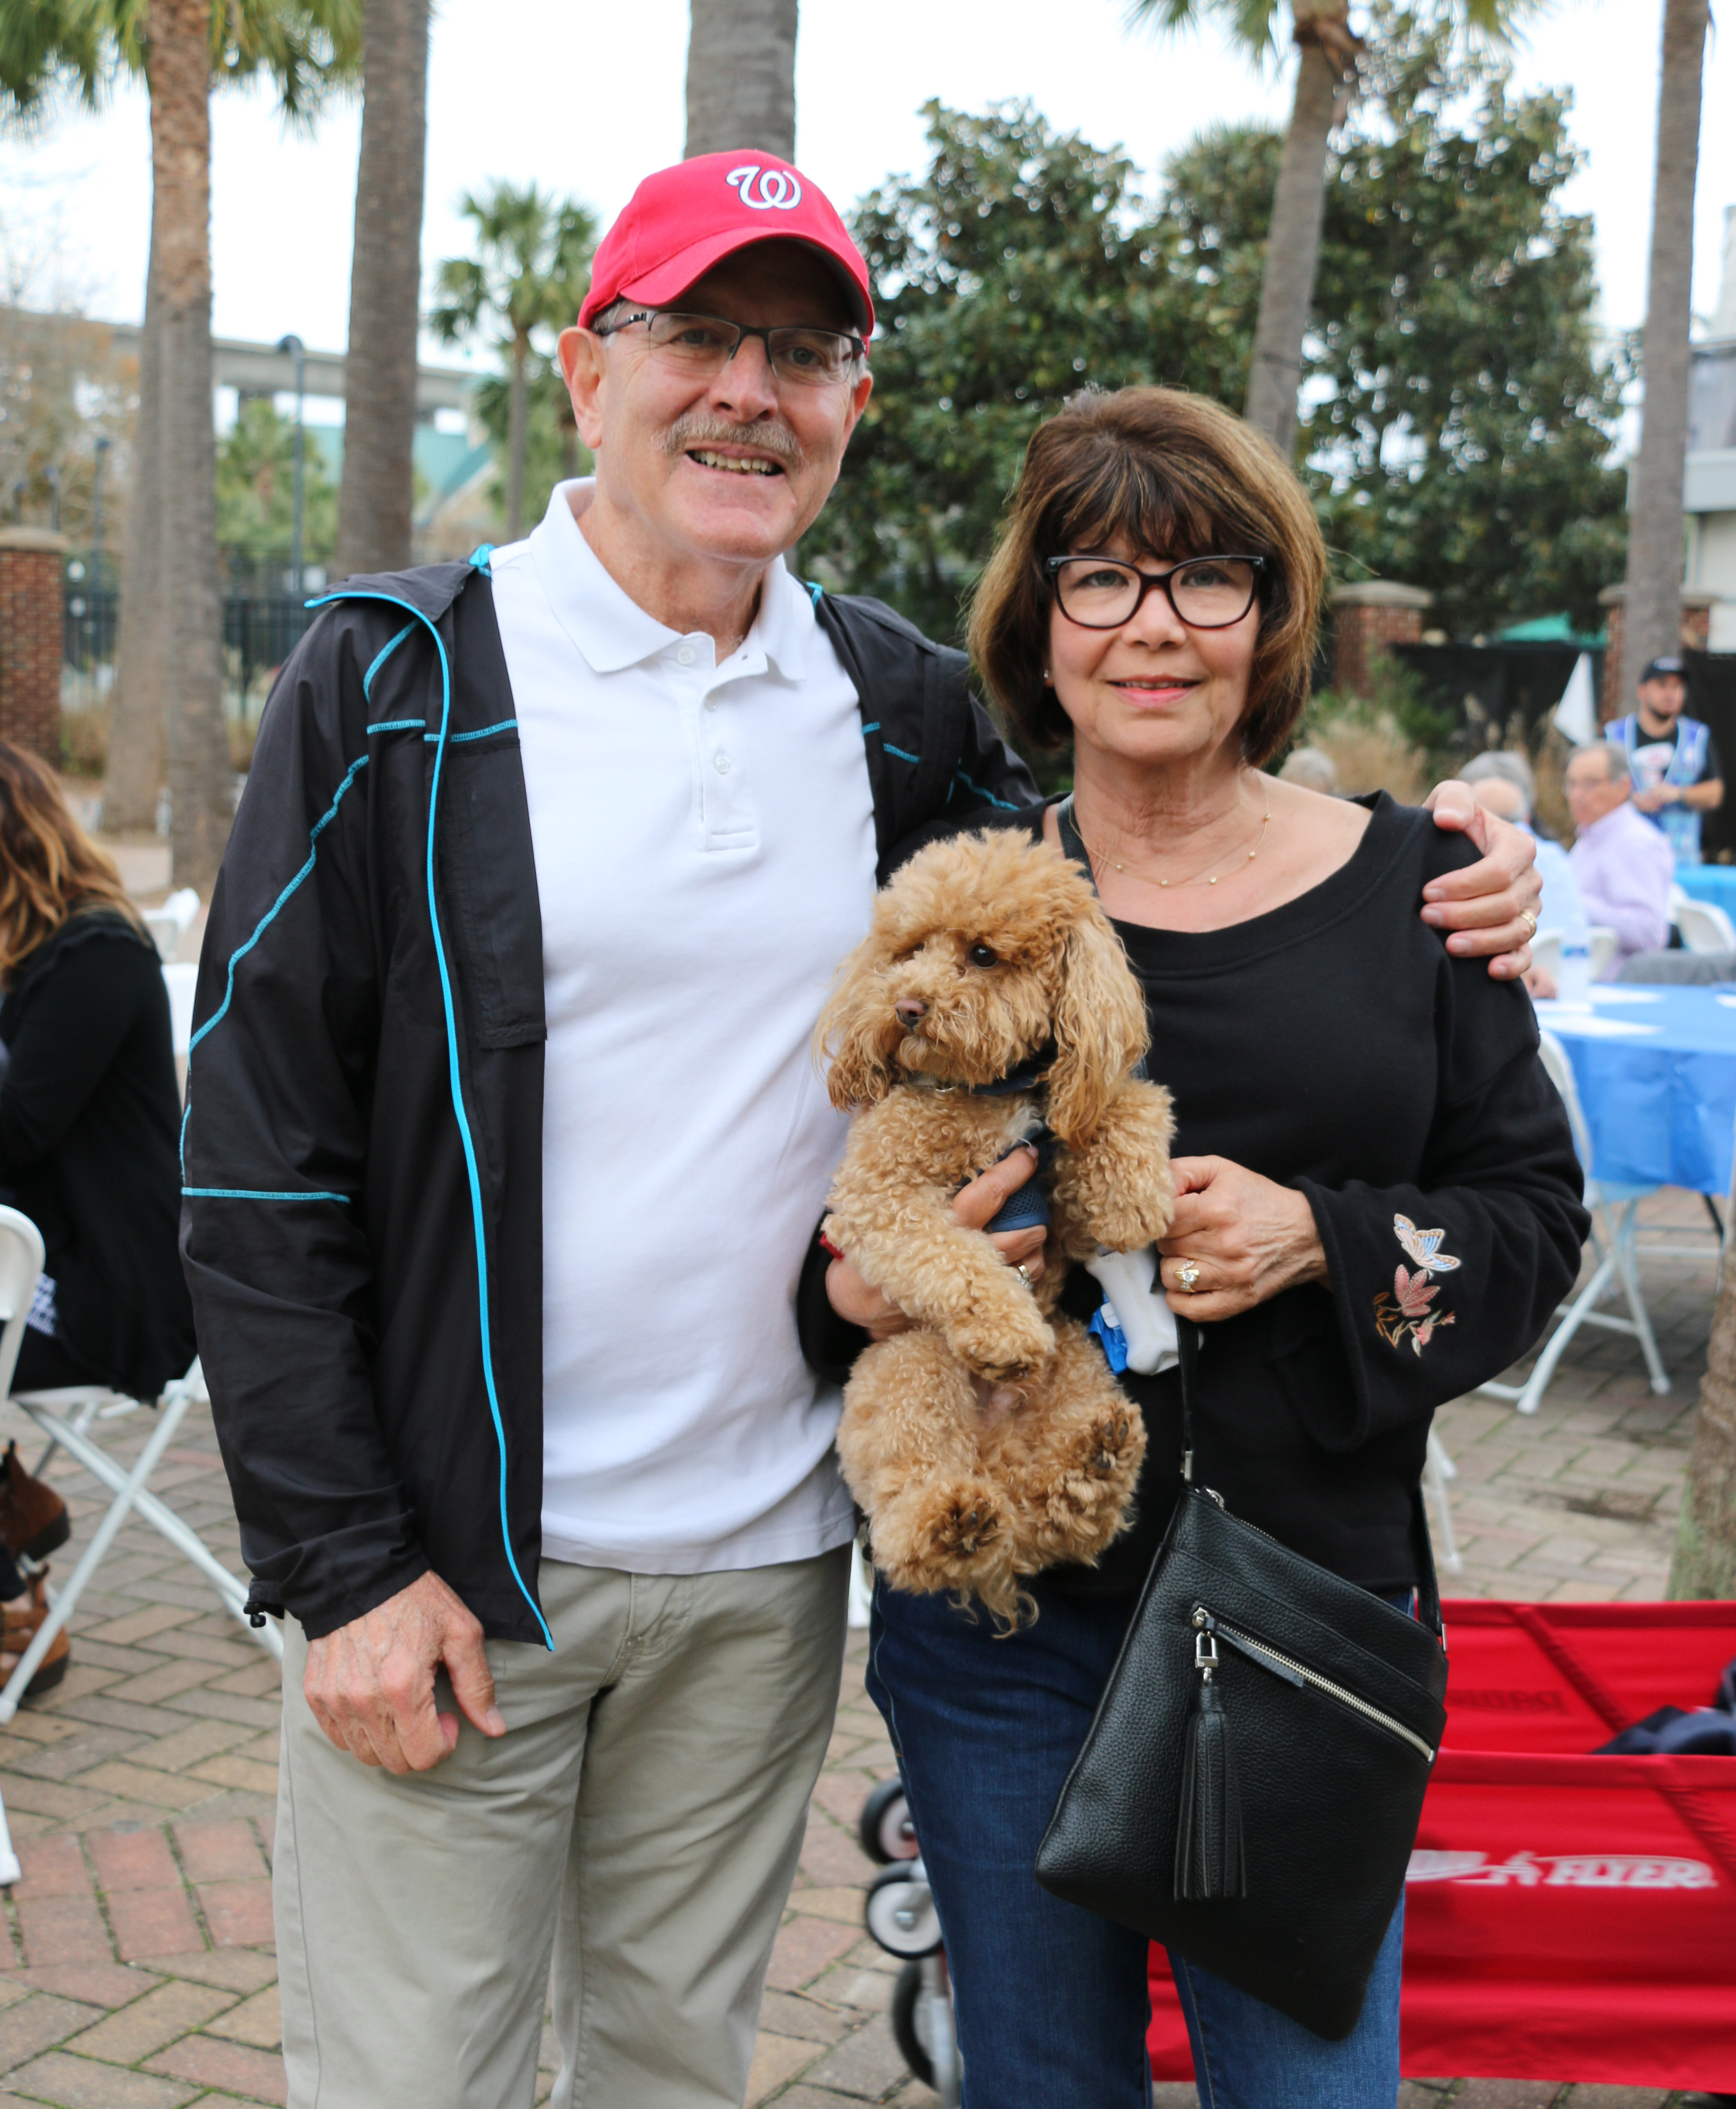 Jeff and Patty Bass brought their grand-dog Choo-Choo to the celebration.